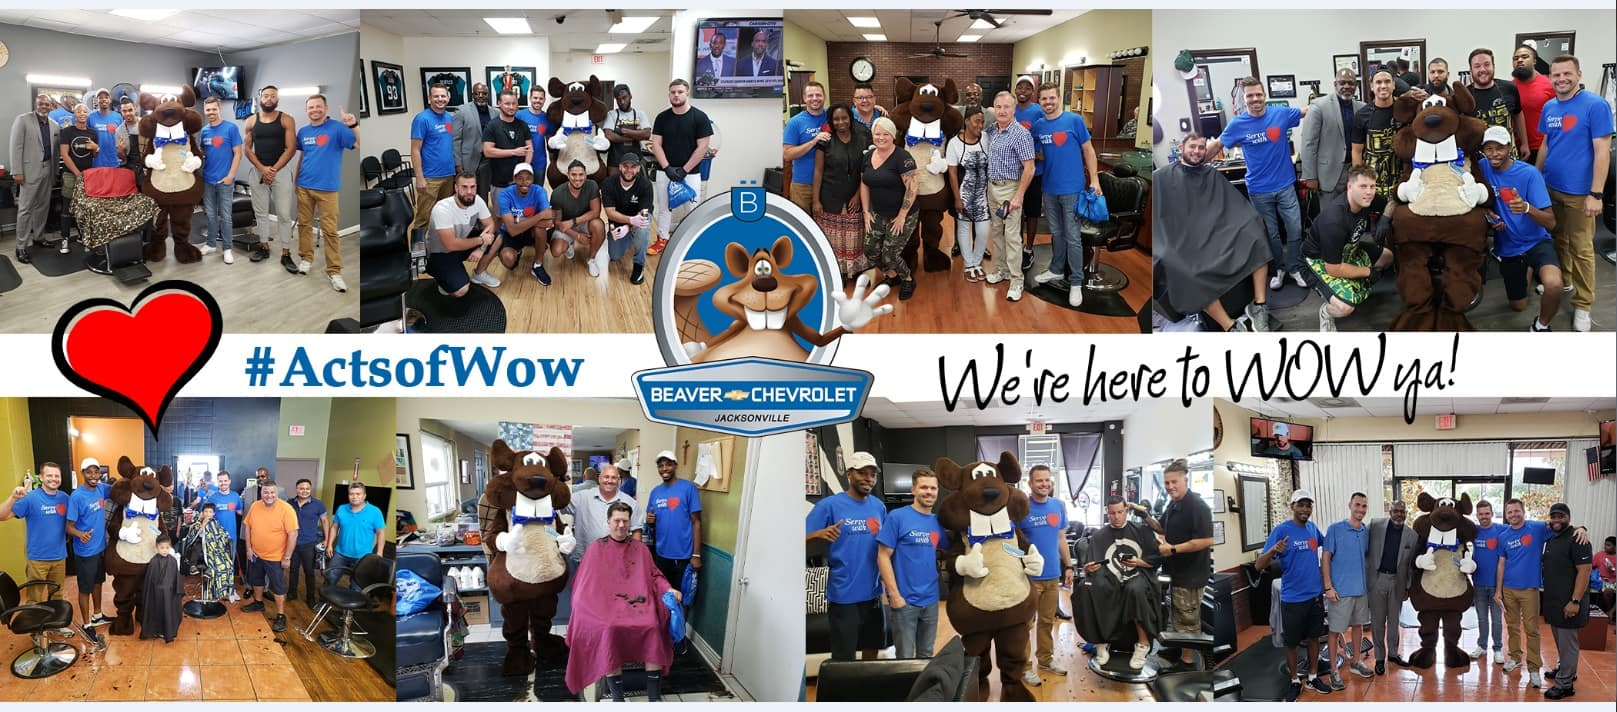 Random Acts of WOW 4 Beaver Chevrolet Barber Shops Jacksonville Florida